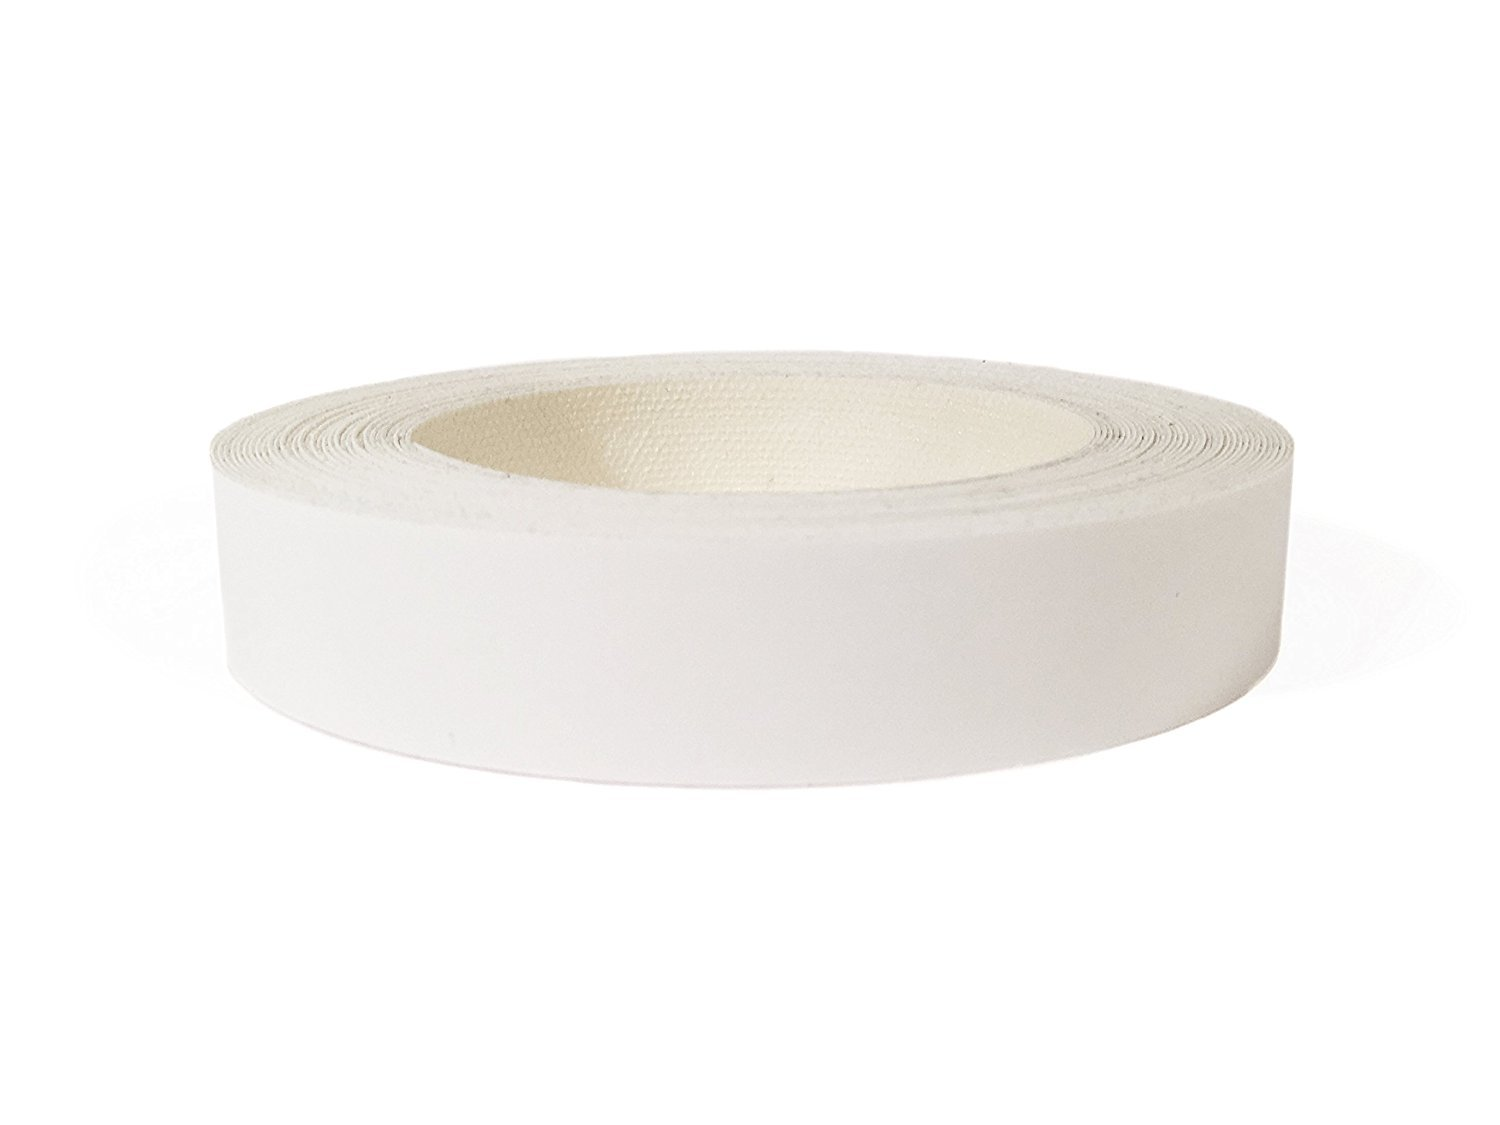 White Melamine Edge Banding Preglued 3/4'' X 50' Roll - Iron on - Hot Melt - High Quality. Made in USA.